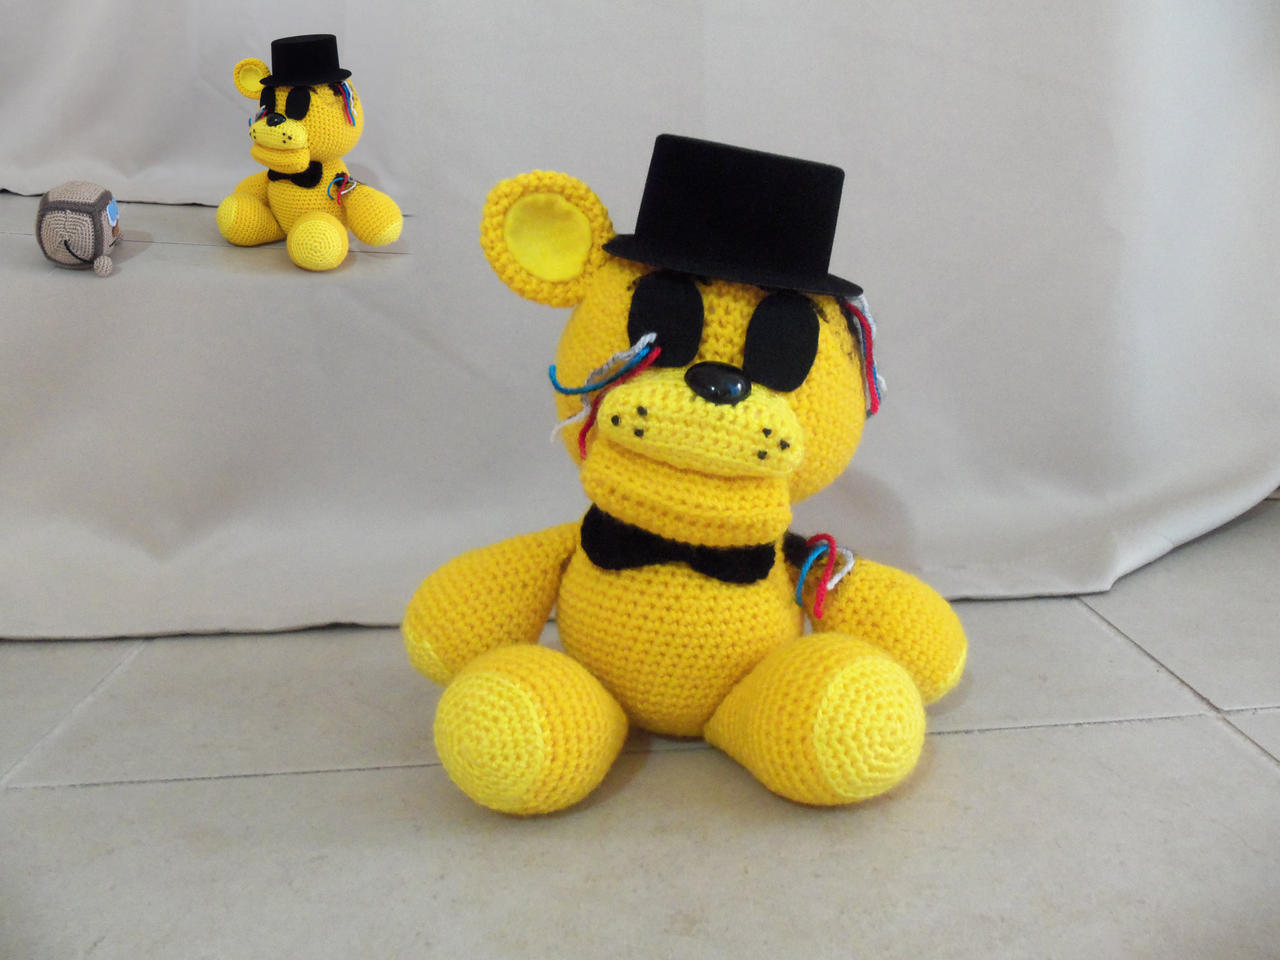 Fnaf withered golden freddy for sale by onlyifitsfluffy on